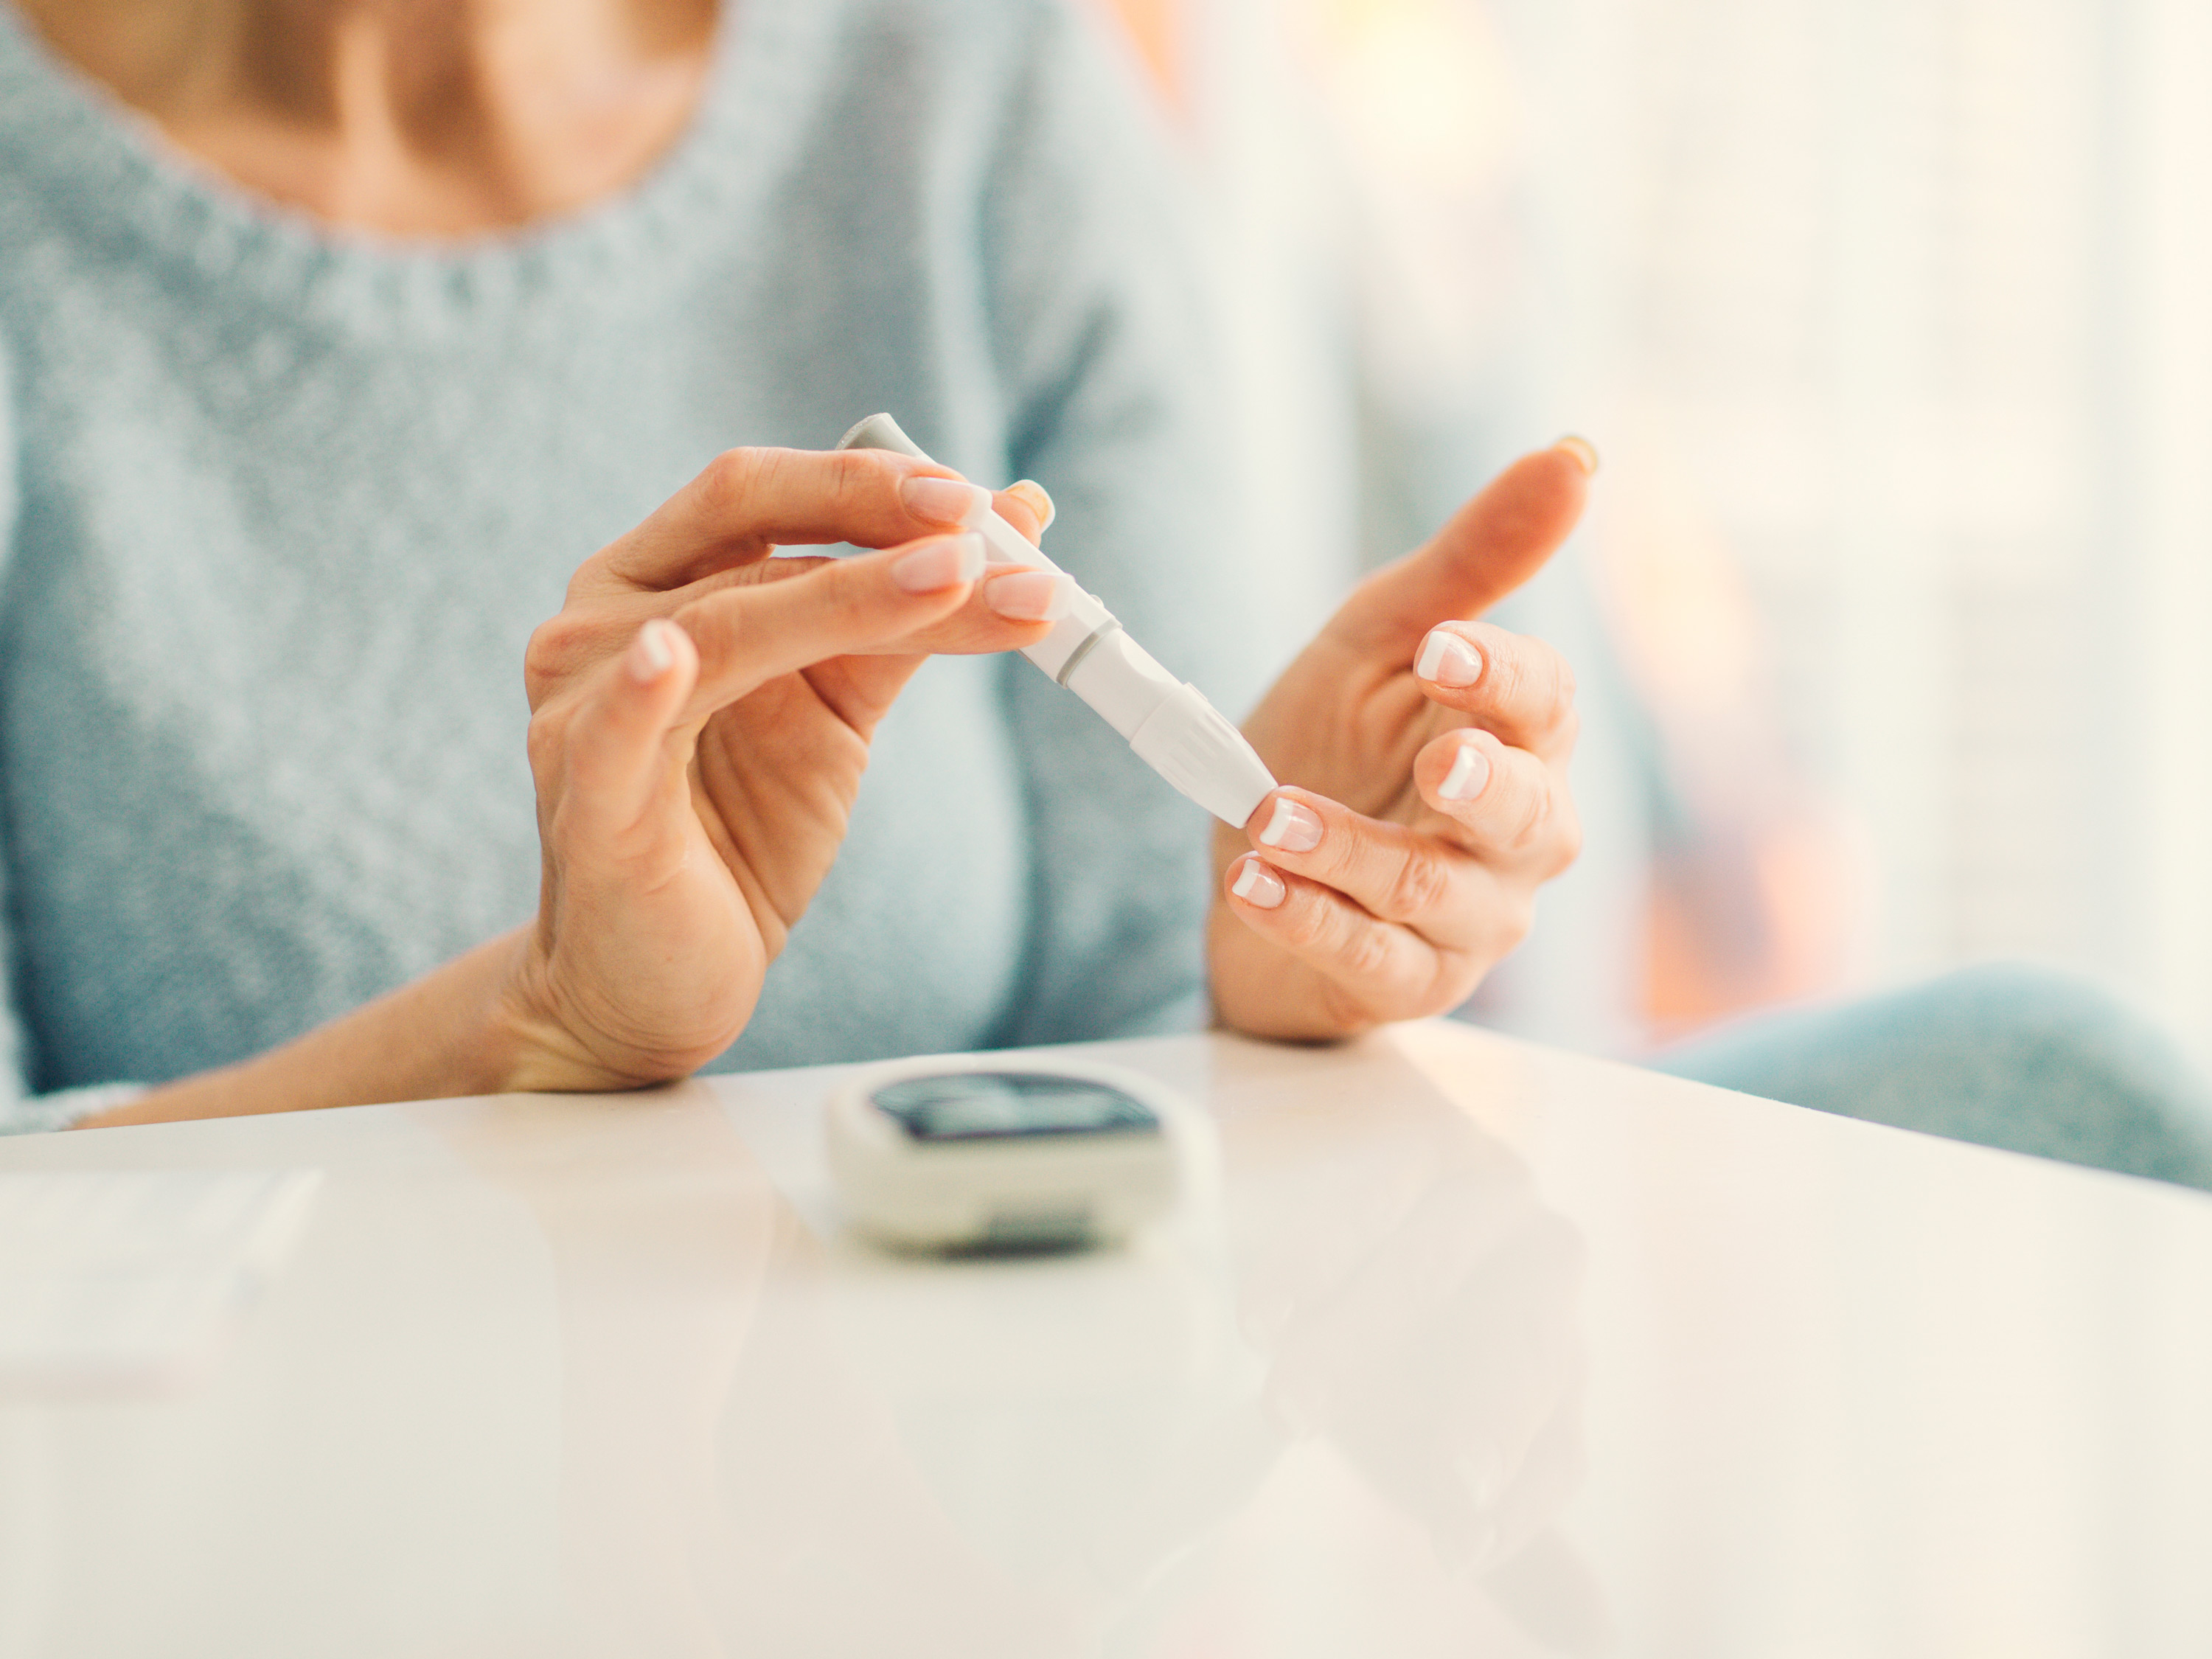 A photo of a woman testing blood sugar with finger prick.